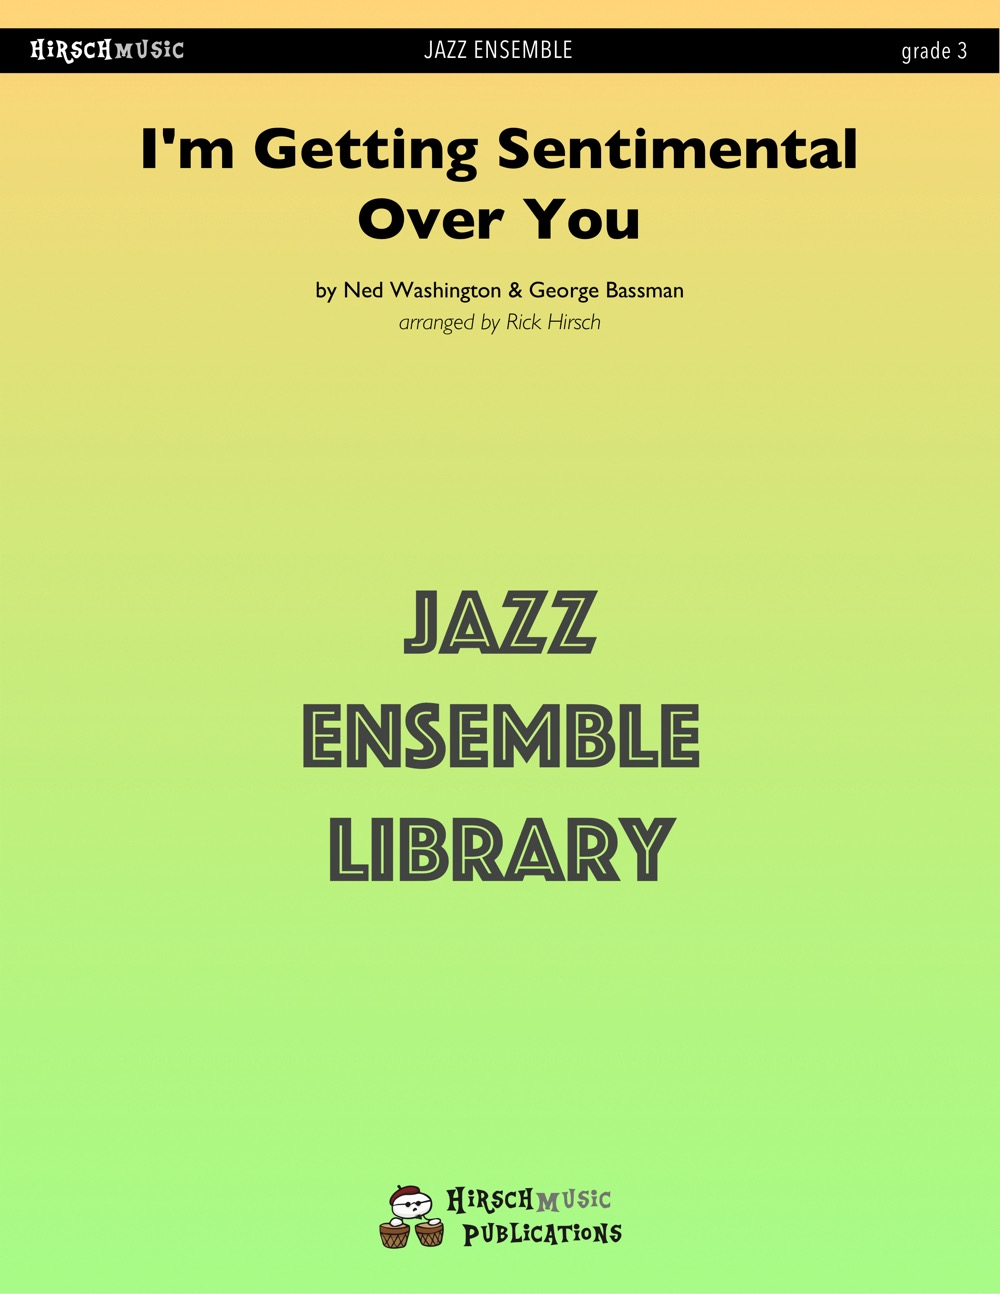 I'm Getting Sentimental Over You (Jazz Ensemble - Score and Parts)